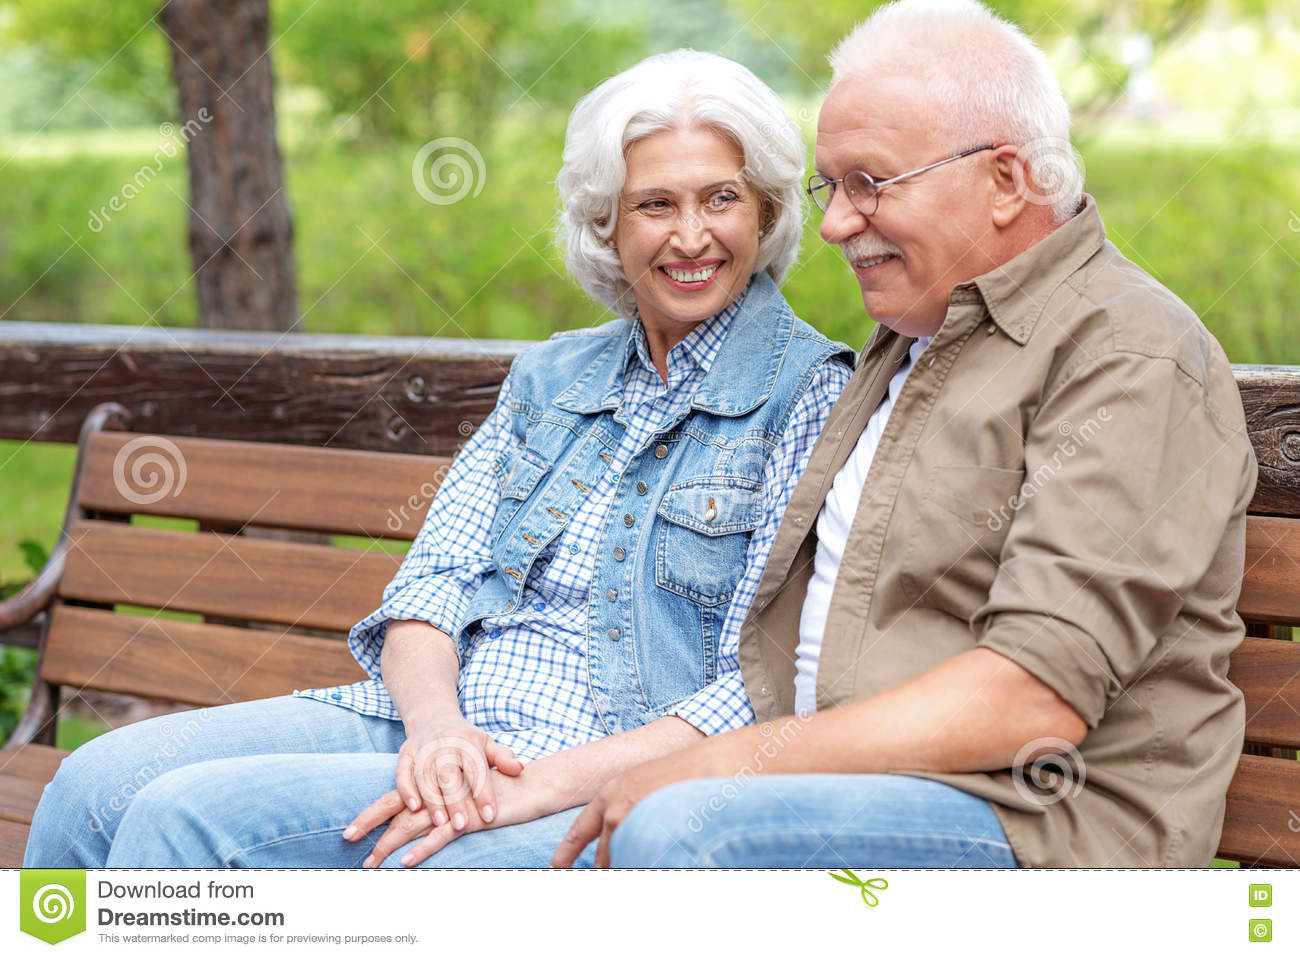 Happy old married couple is sitting on bench in park together. They are  holding hands and smiling